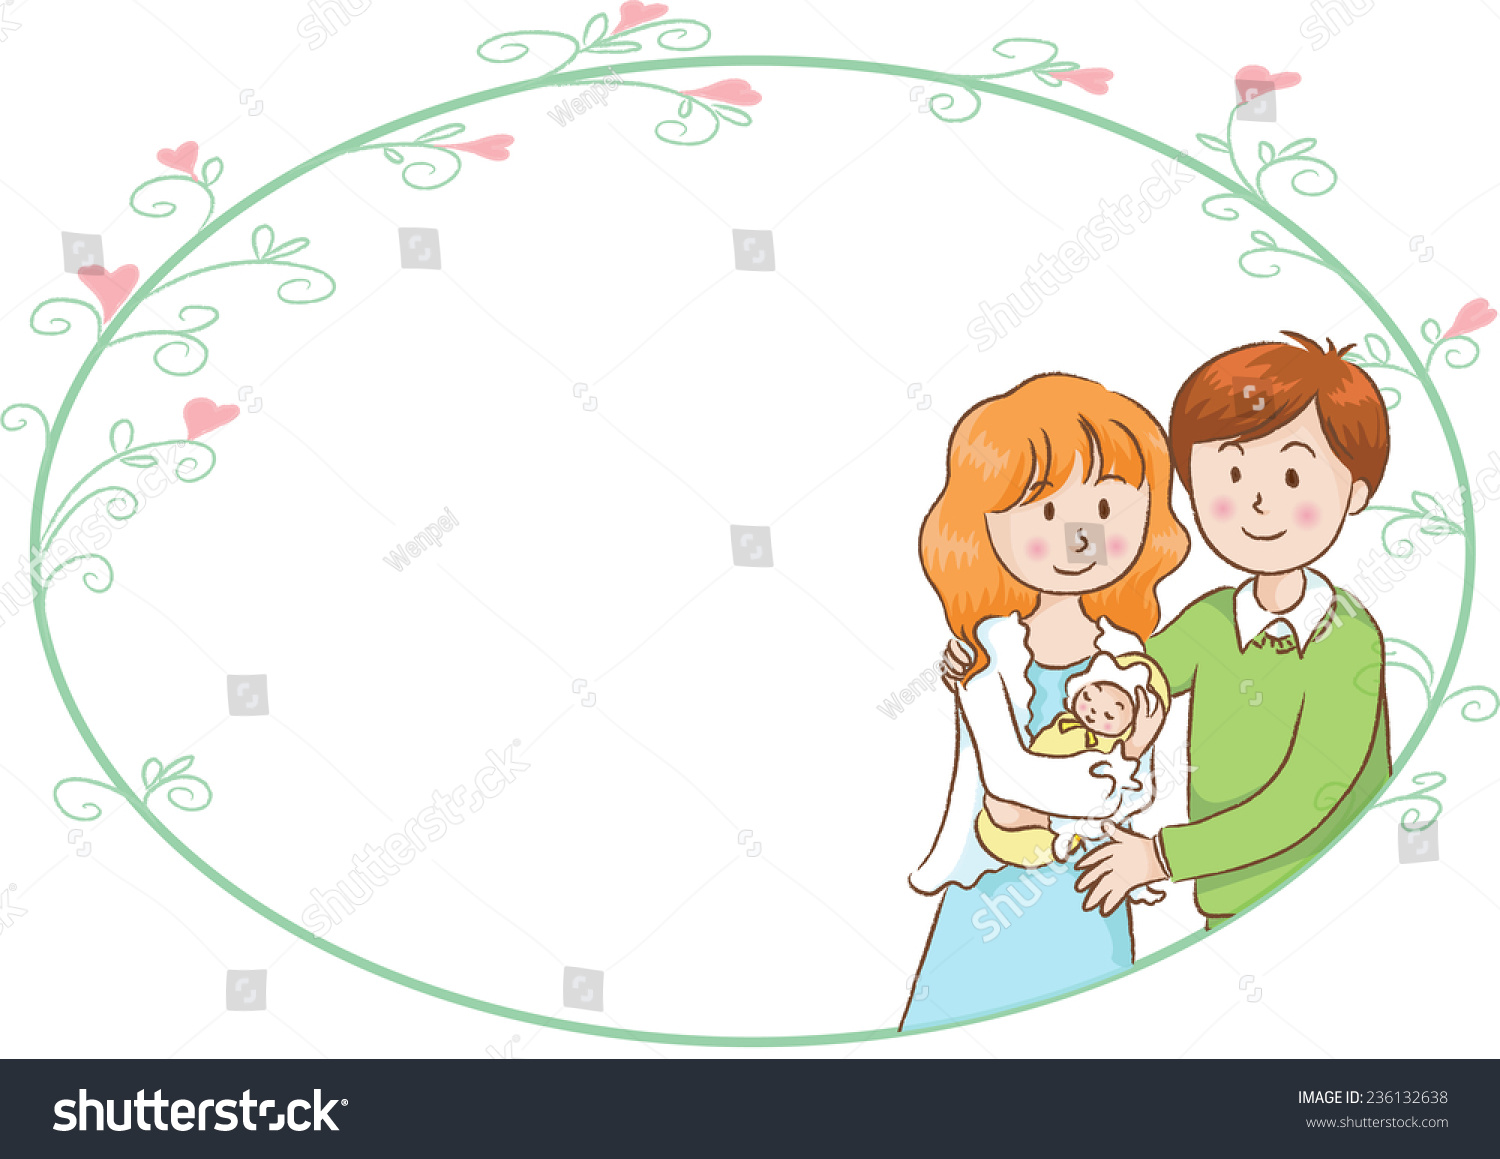 Blank greeting card new born baby stock vector 236132638 blank greeting card for new born baby kristyandbryce Gallery